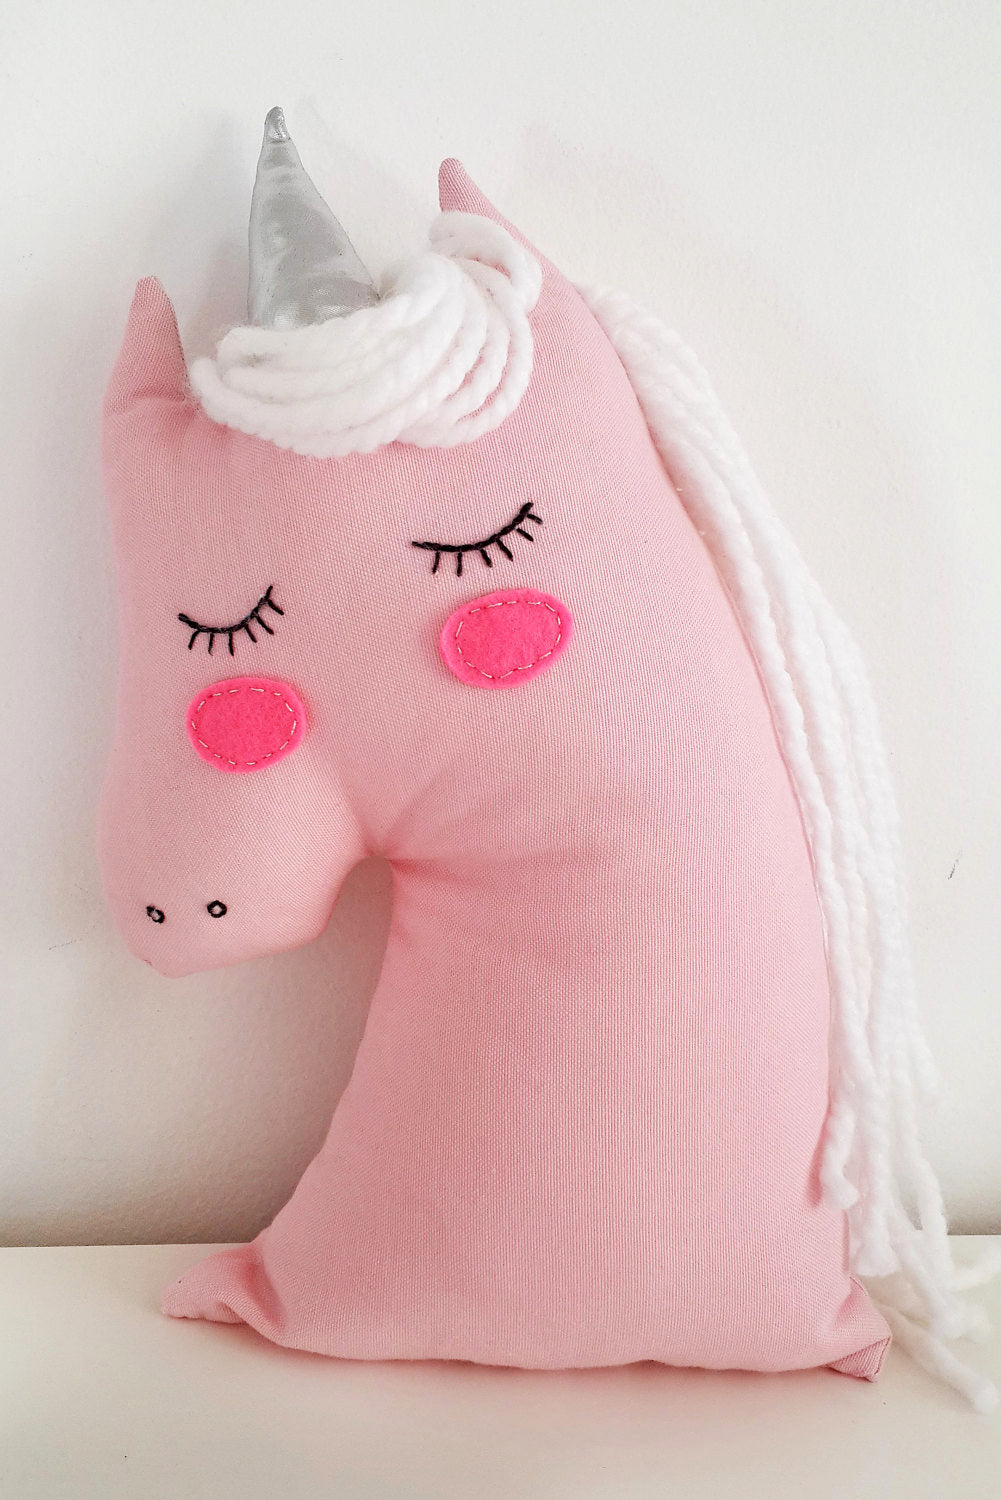 Handmade Plush Animal Doll nursery decor pillow, Pink Unicorn Pink - Babazen